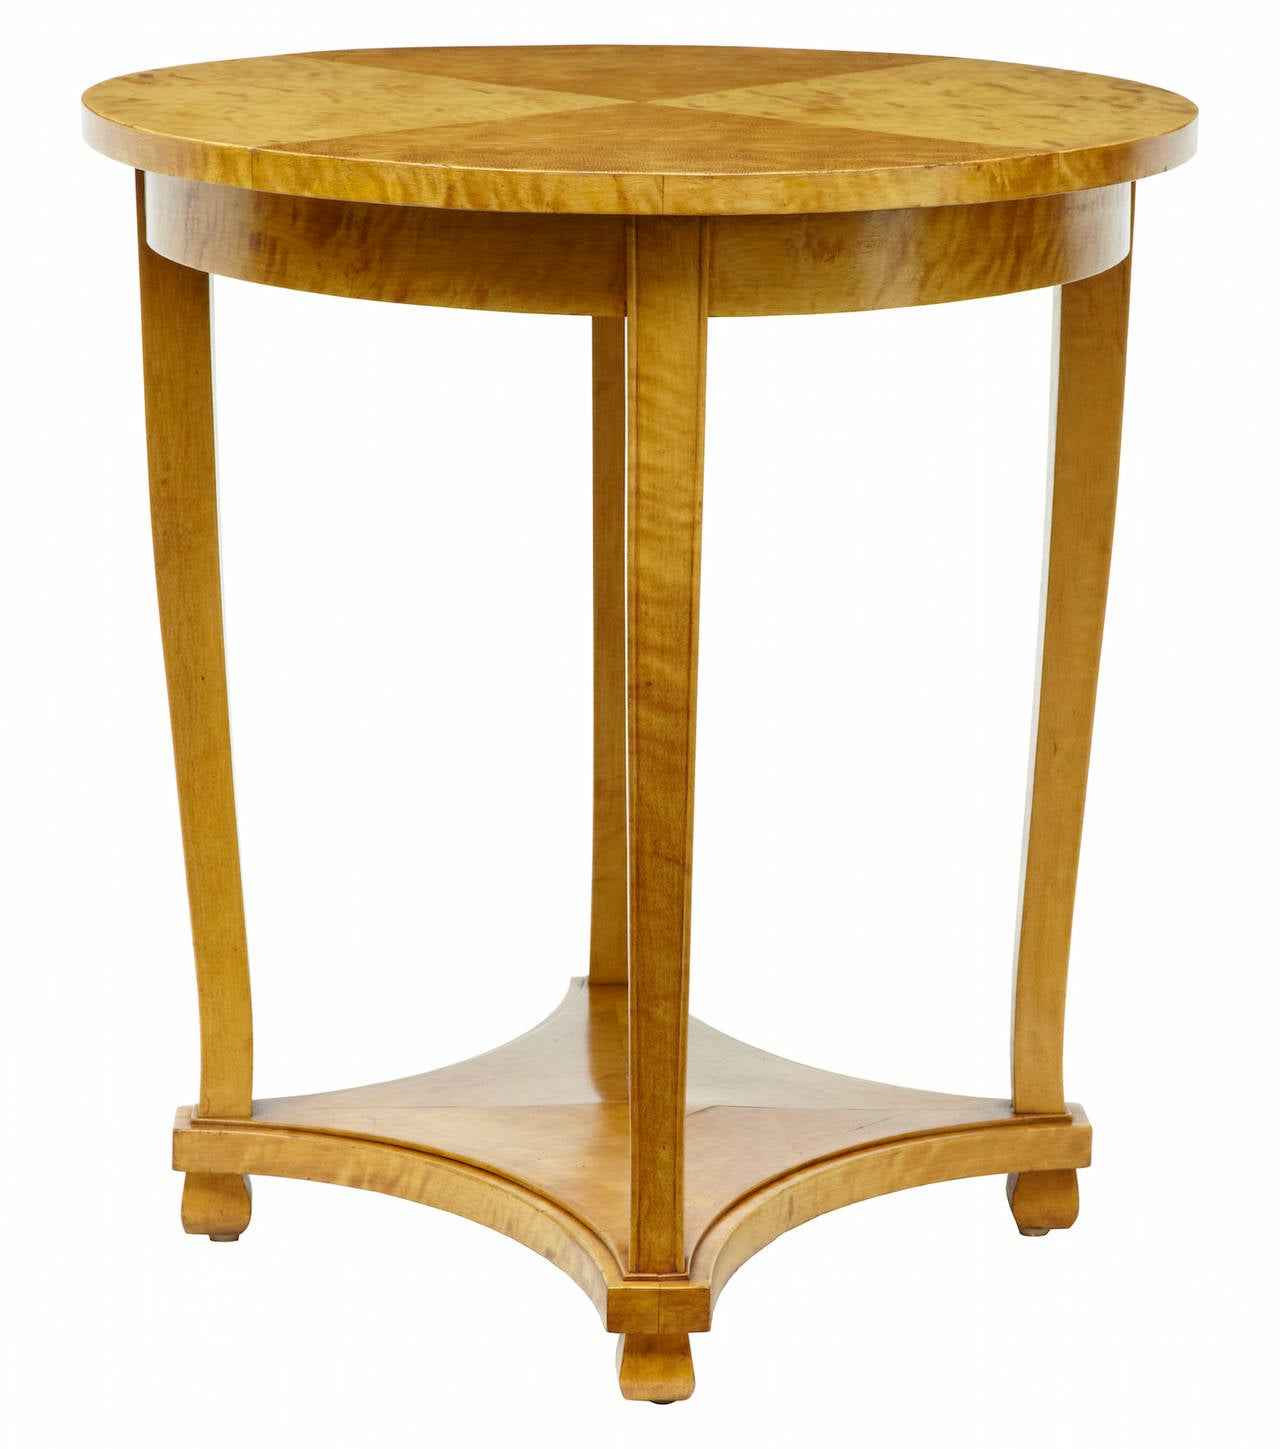 19th century Swedish birch oval occasional table  Good quality oval Swedish side table.  Quarter veneer to the top, tapering legs with shelf forming part of the base  Measures: Height: 29 1/2